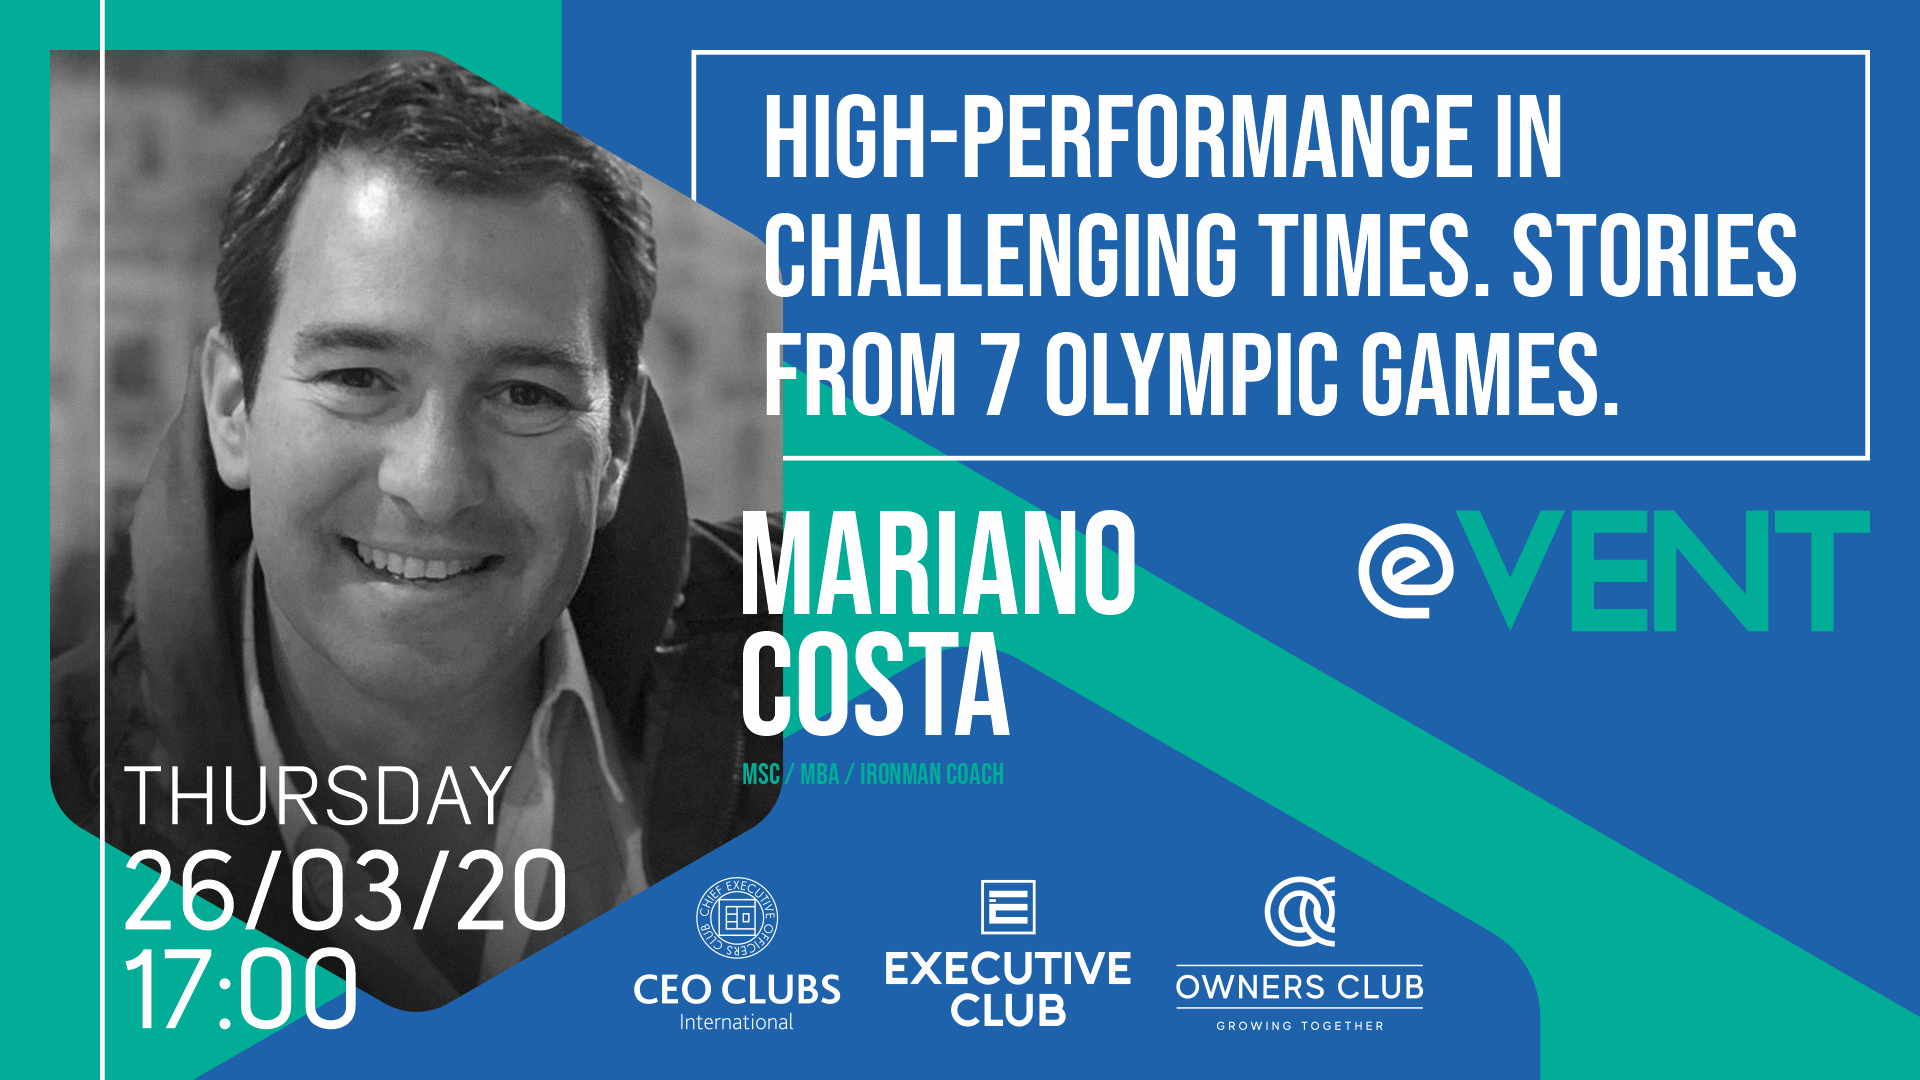 Live on Zoom: High-Performance in Challenging Times. Stories from 7 Olympic Games